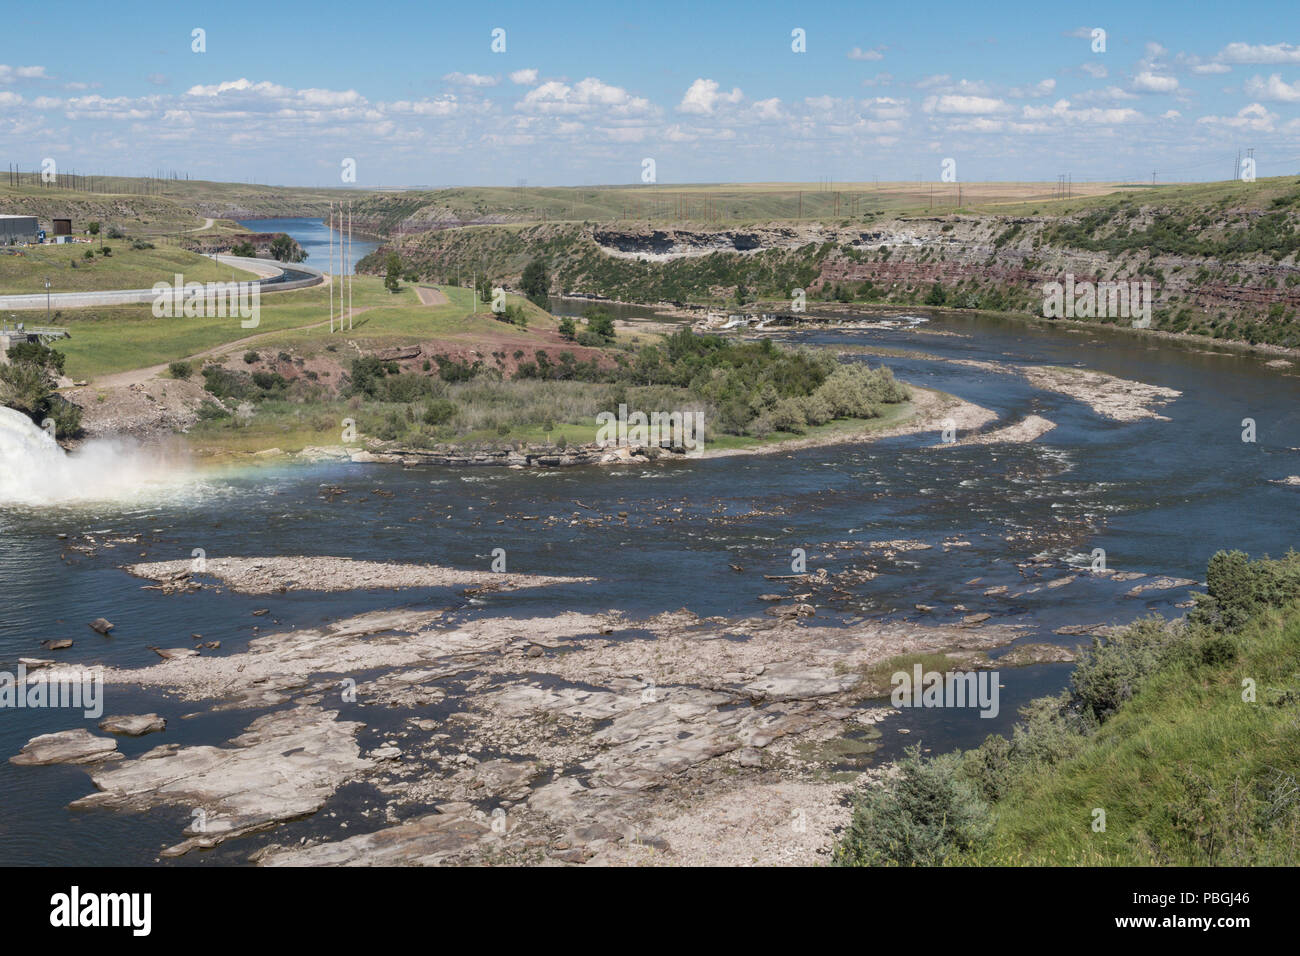 Rainbow Falls and Missouri River in Great Falls, Montana, USA - Stock Image